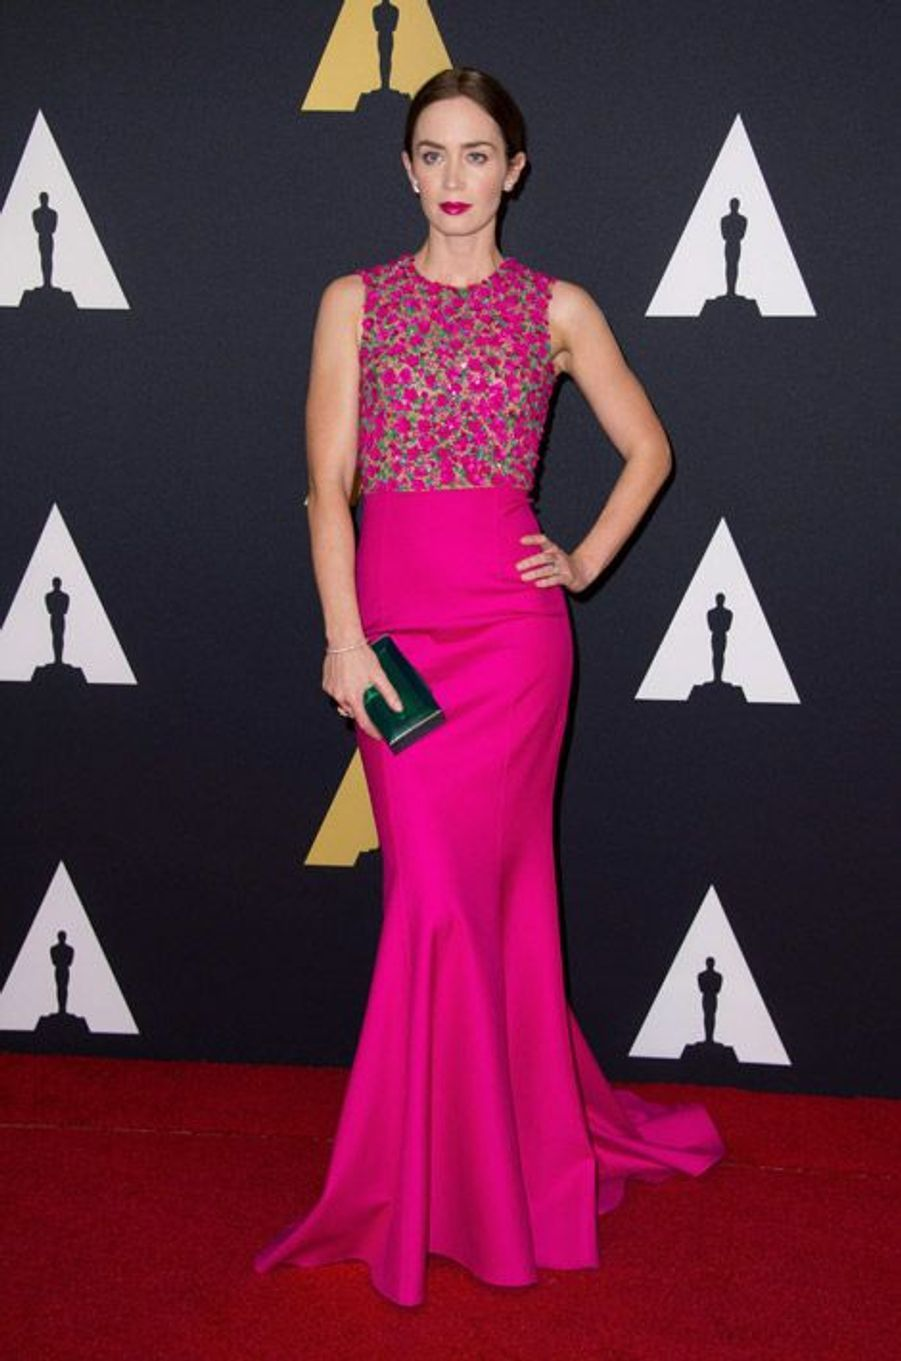 L'actrice Emily Blunt en Michael Kors lors du 6eme gala Annual Governors Awards à Hollywood